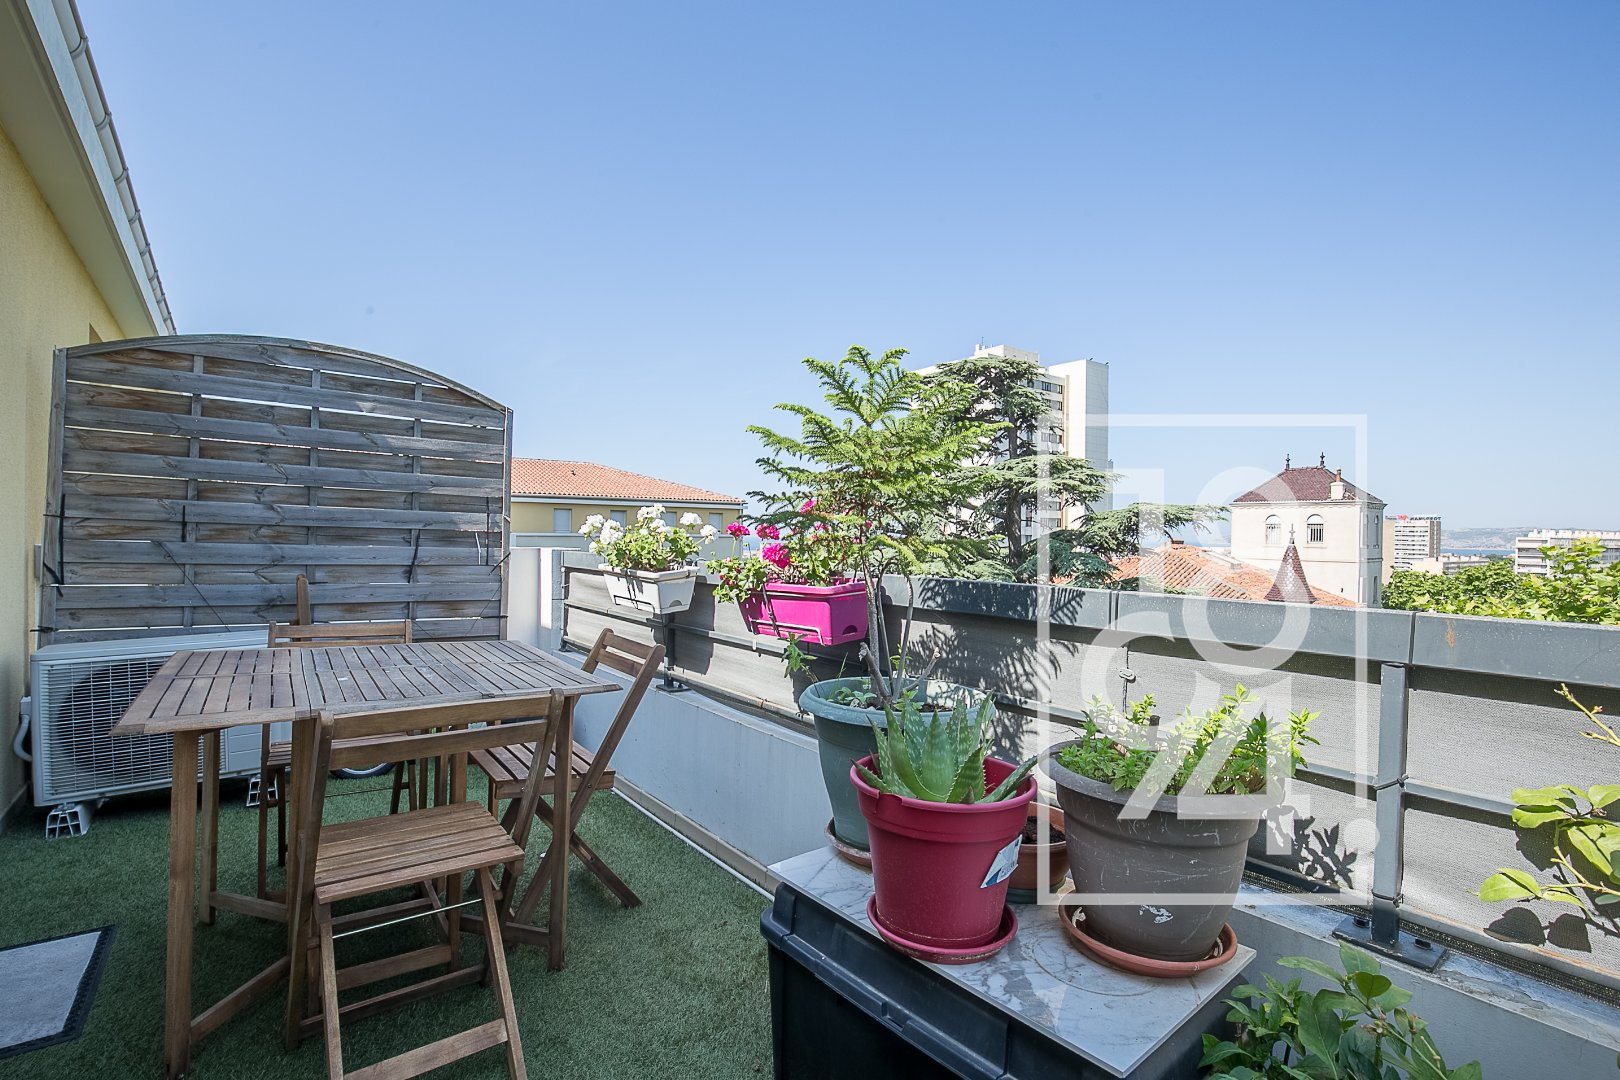 APPARTEMENT T3 59M2 TERRASSE VUE DEGAGEE PARKING RESIDENCE SECURISEE 13014 MARSEILLE